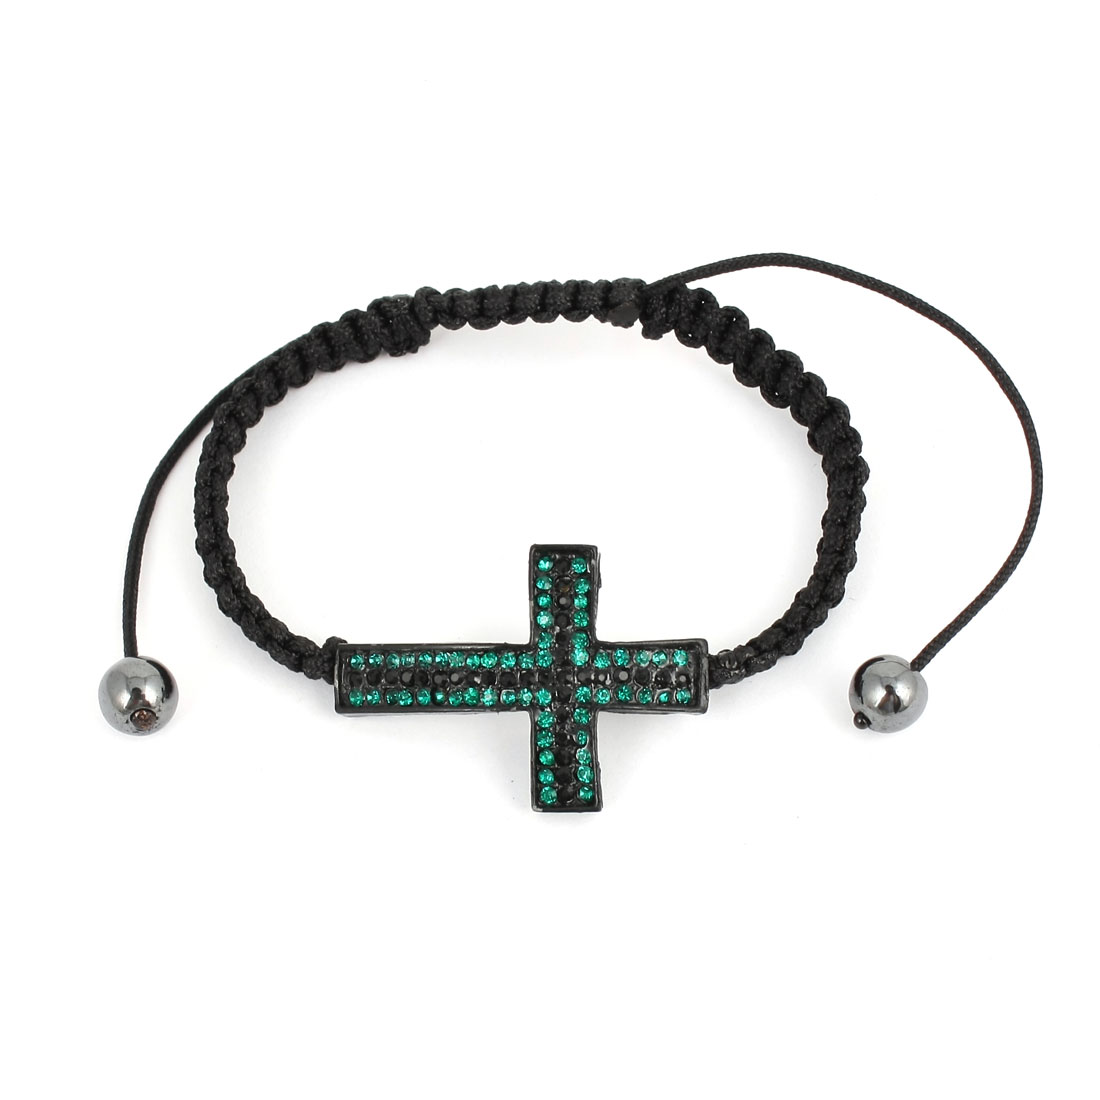 Unisex Rhinestone Cross Detailing Stretch Bracelet Bangle Black Teal Green